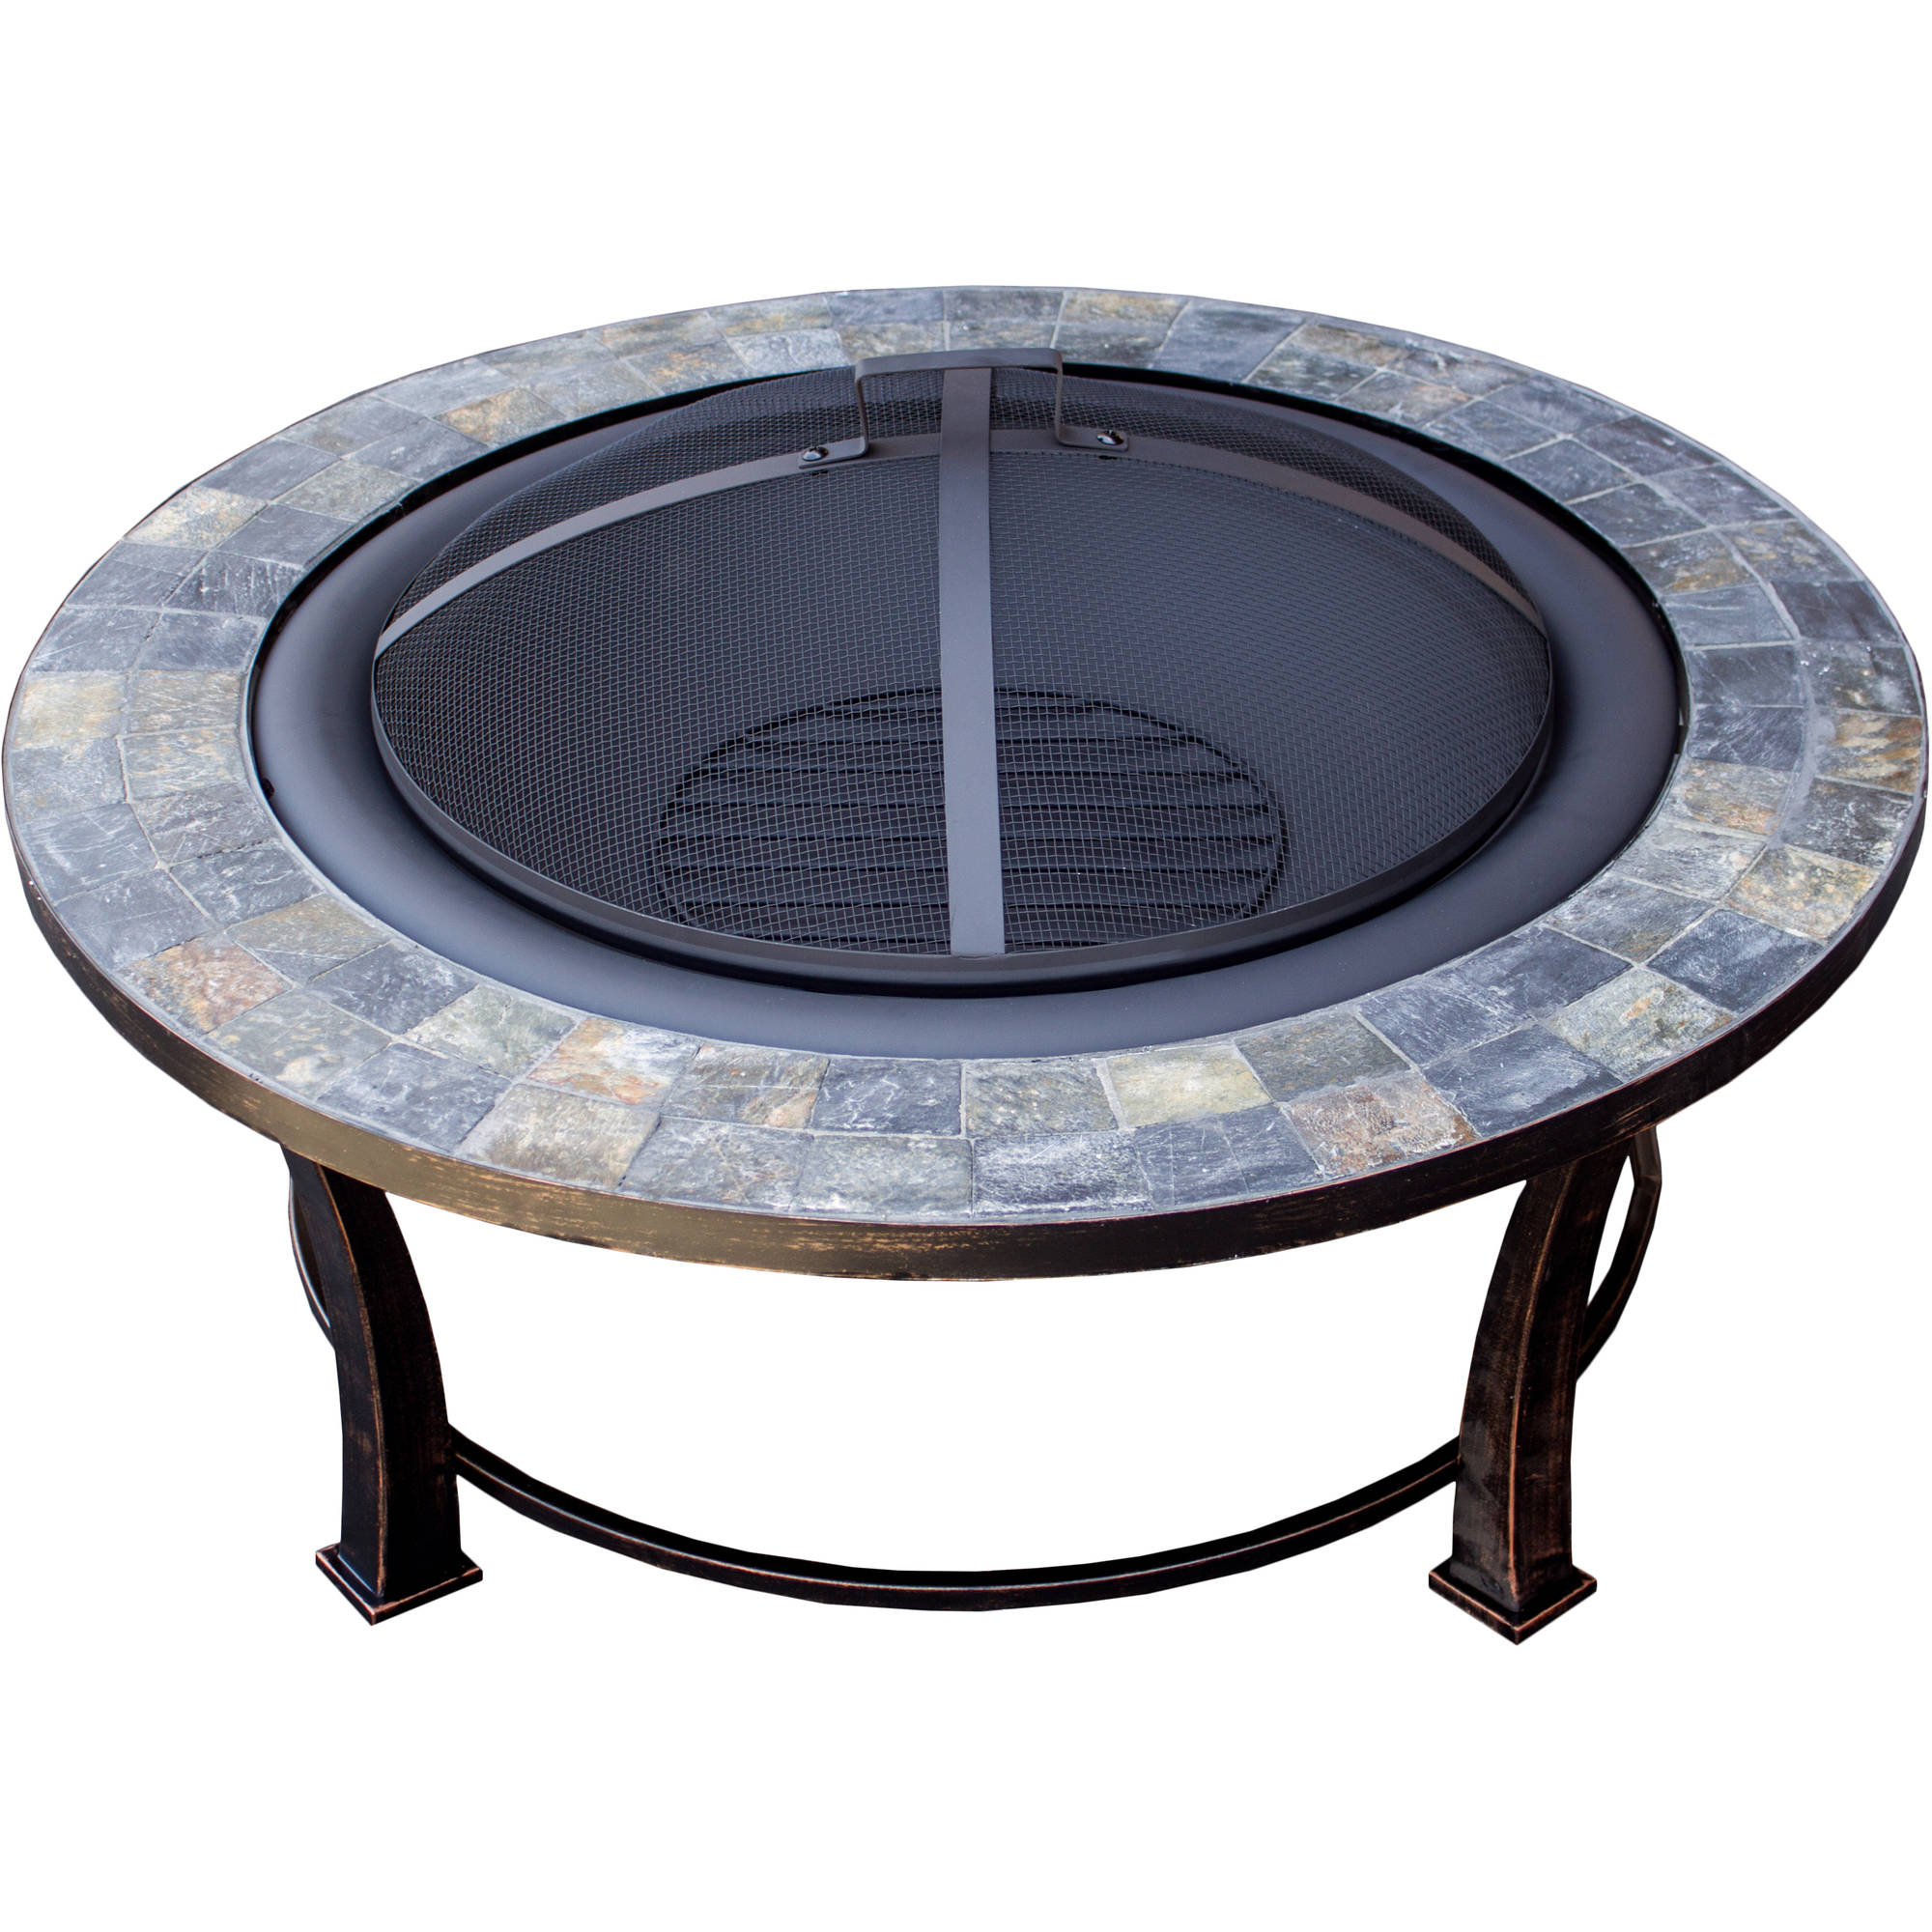 Hiland Round Slate Top Wood Burning Fire Pit